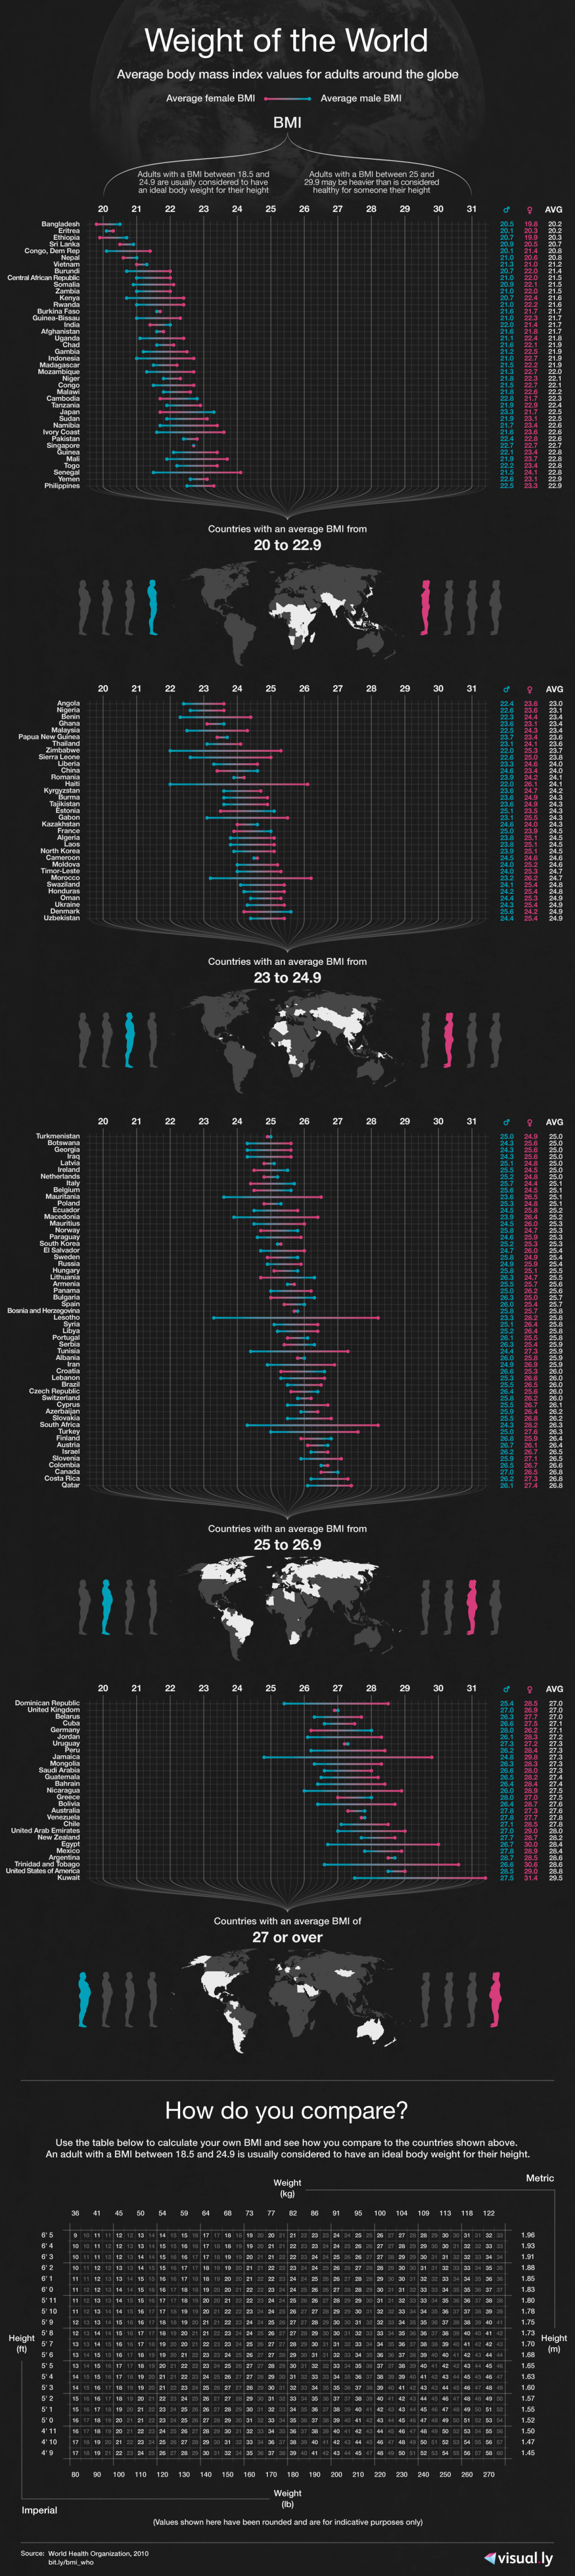 Weight of the World Infographic